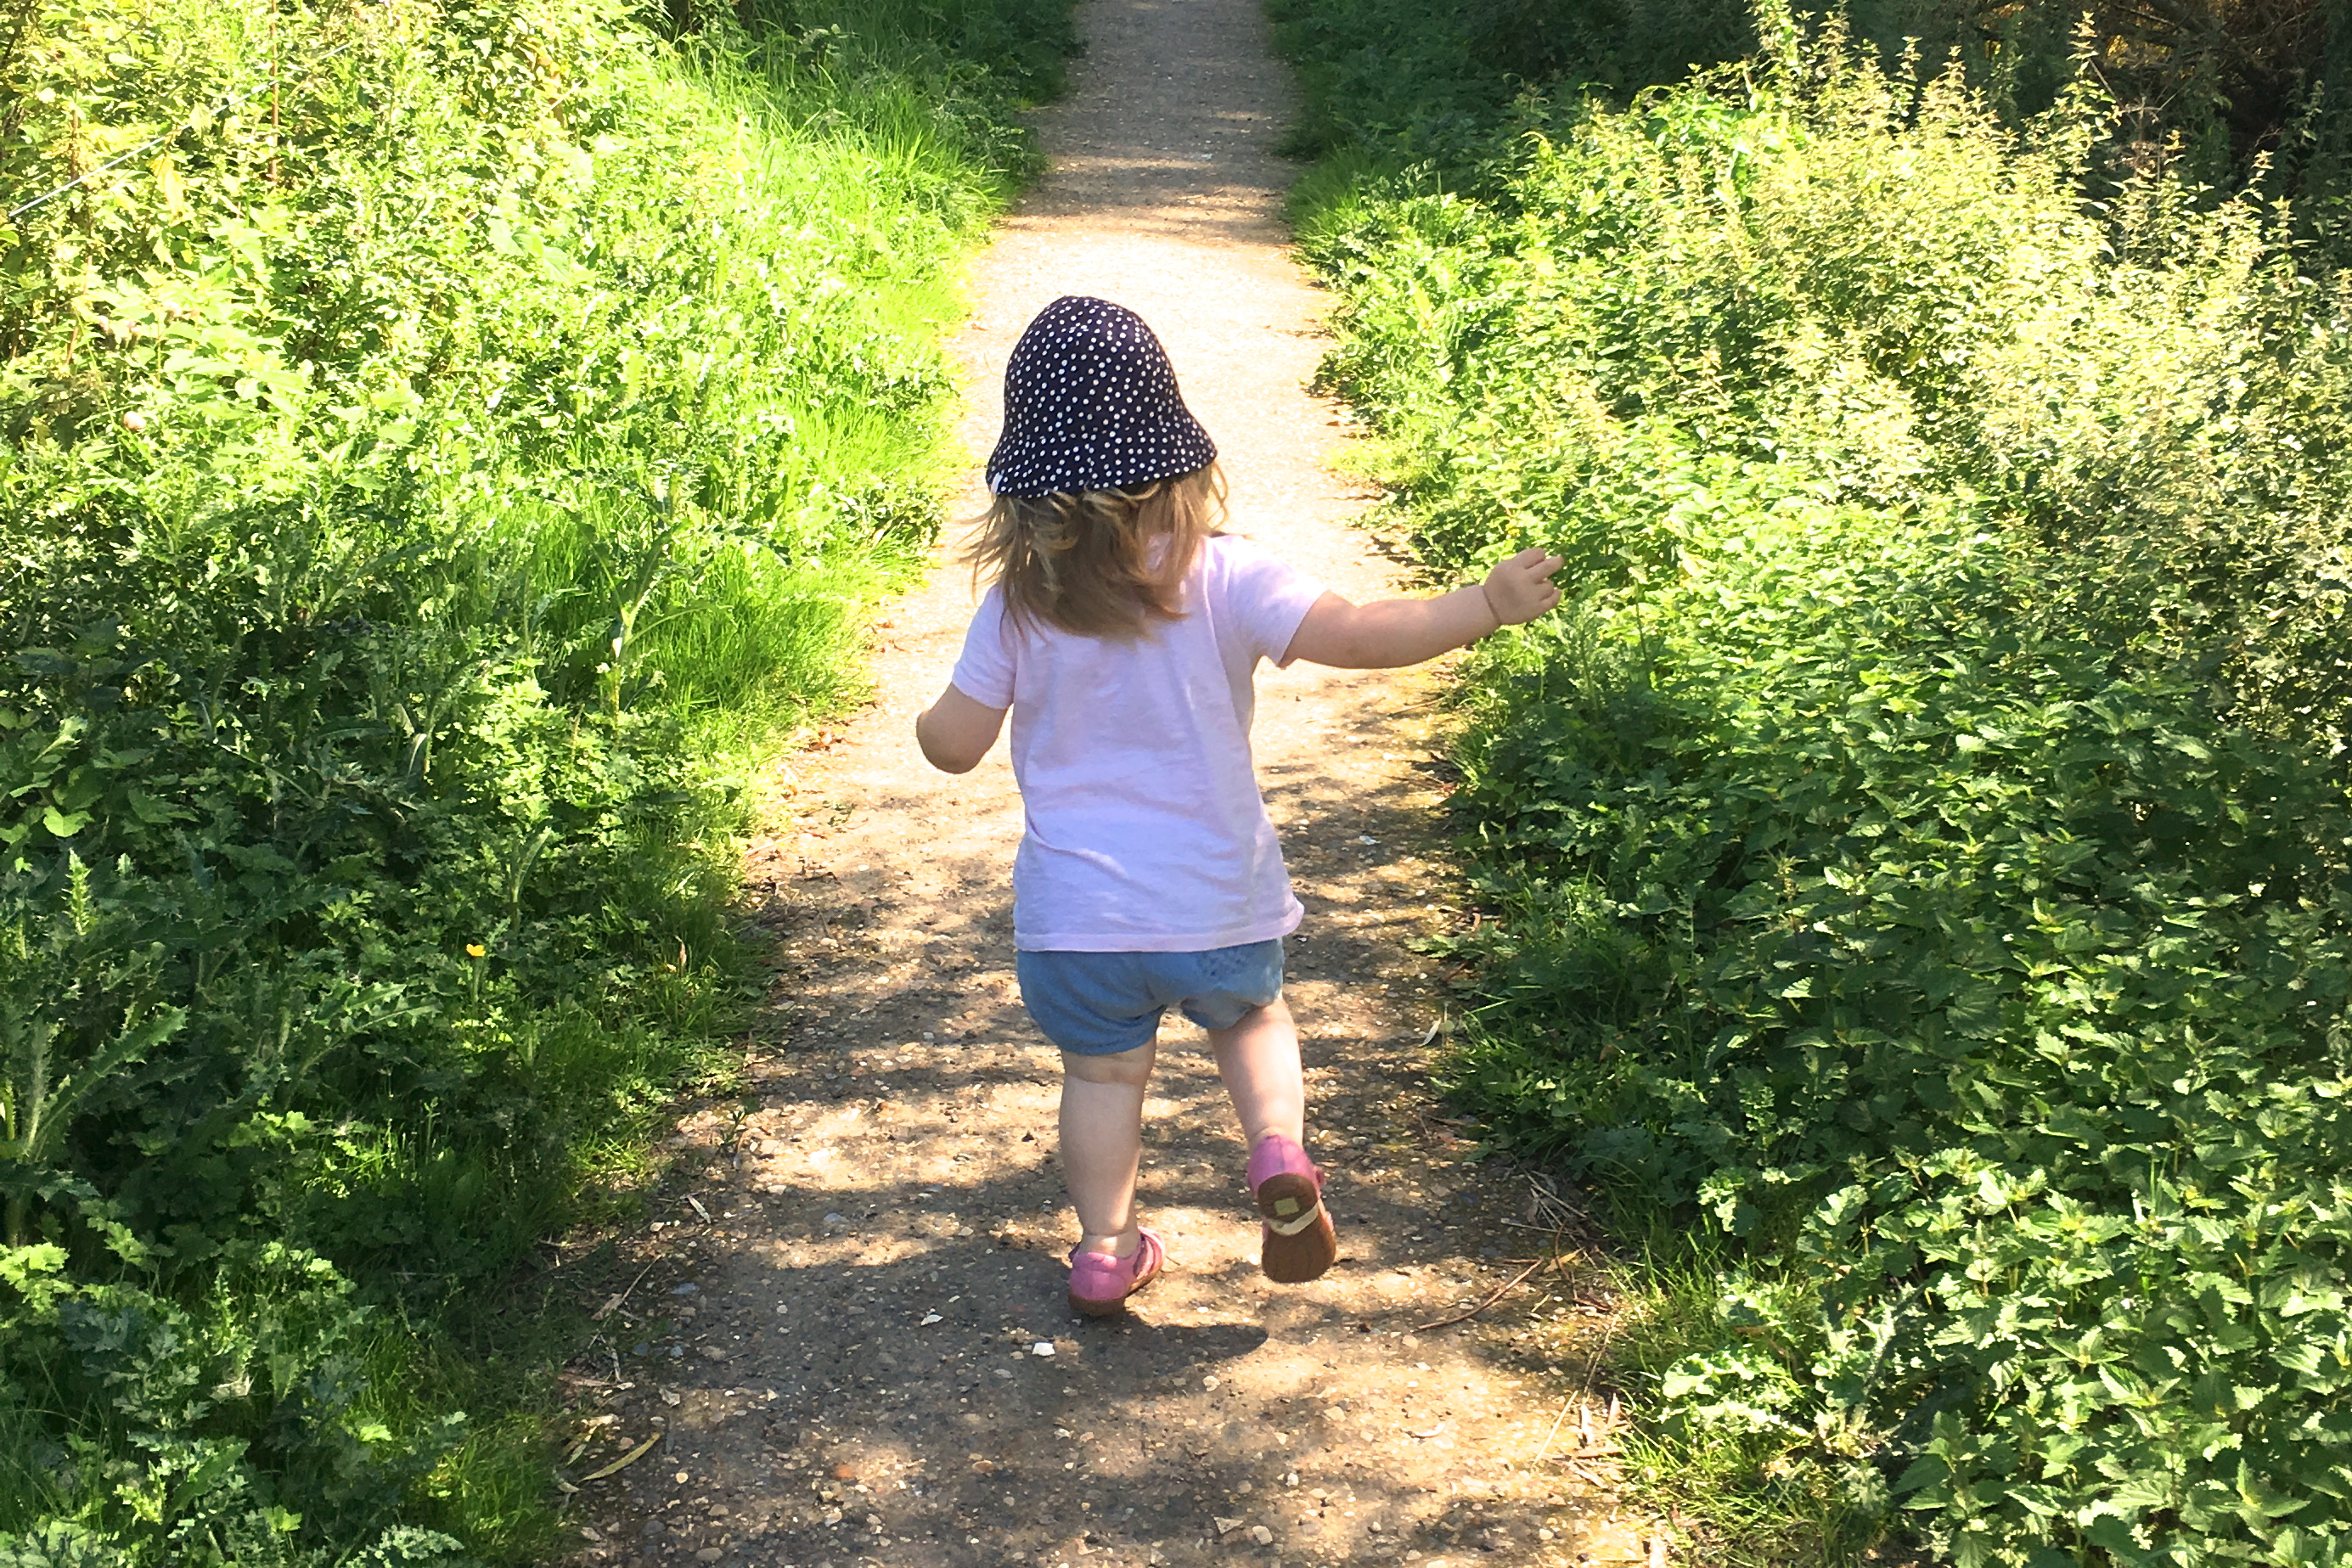 Toddler girl running down country path away from the camera